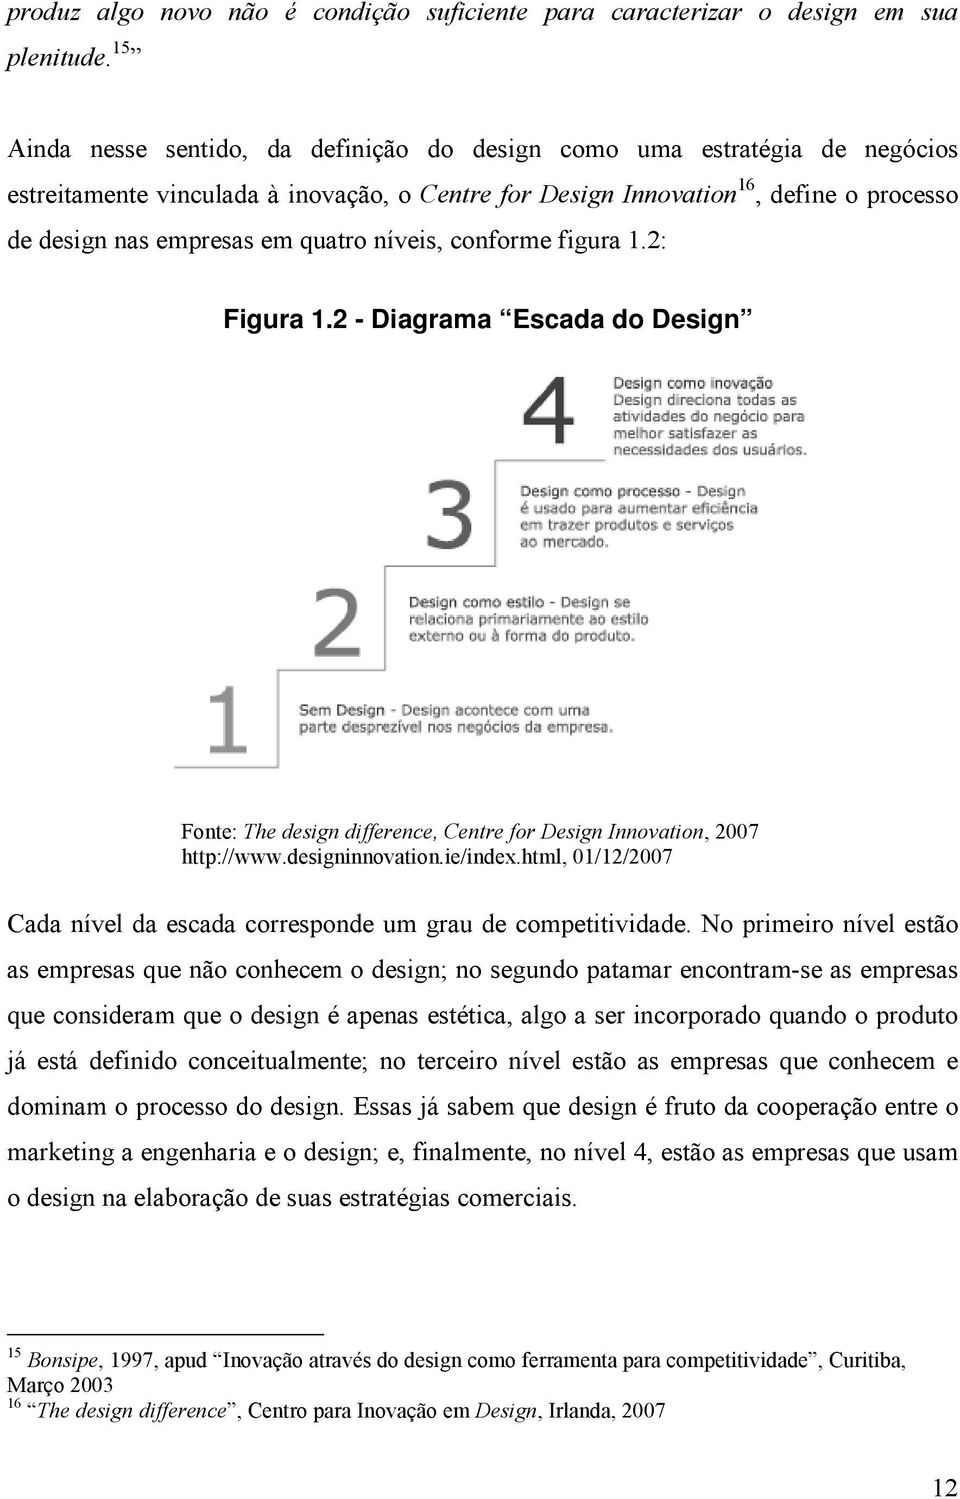 quatro níveis, conforme figura 1.2: Figura 1.2 - Diagrama Escada do Design Fonte: The design difference, Centre for Design Innovation, 2007 http://www.designinnovation.ie/index.